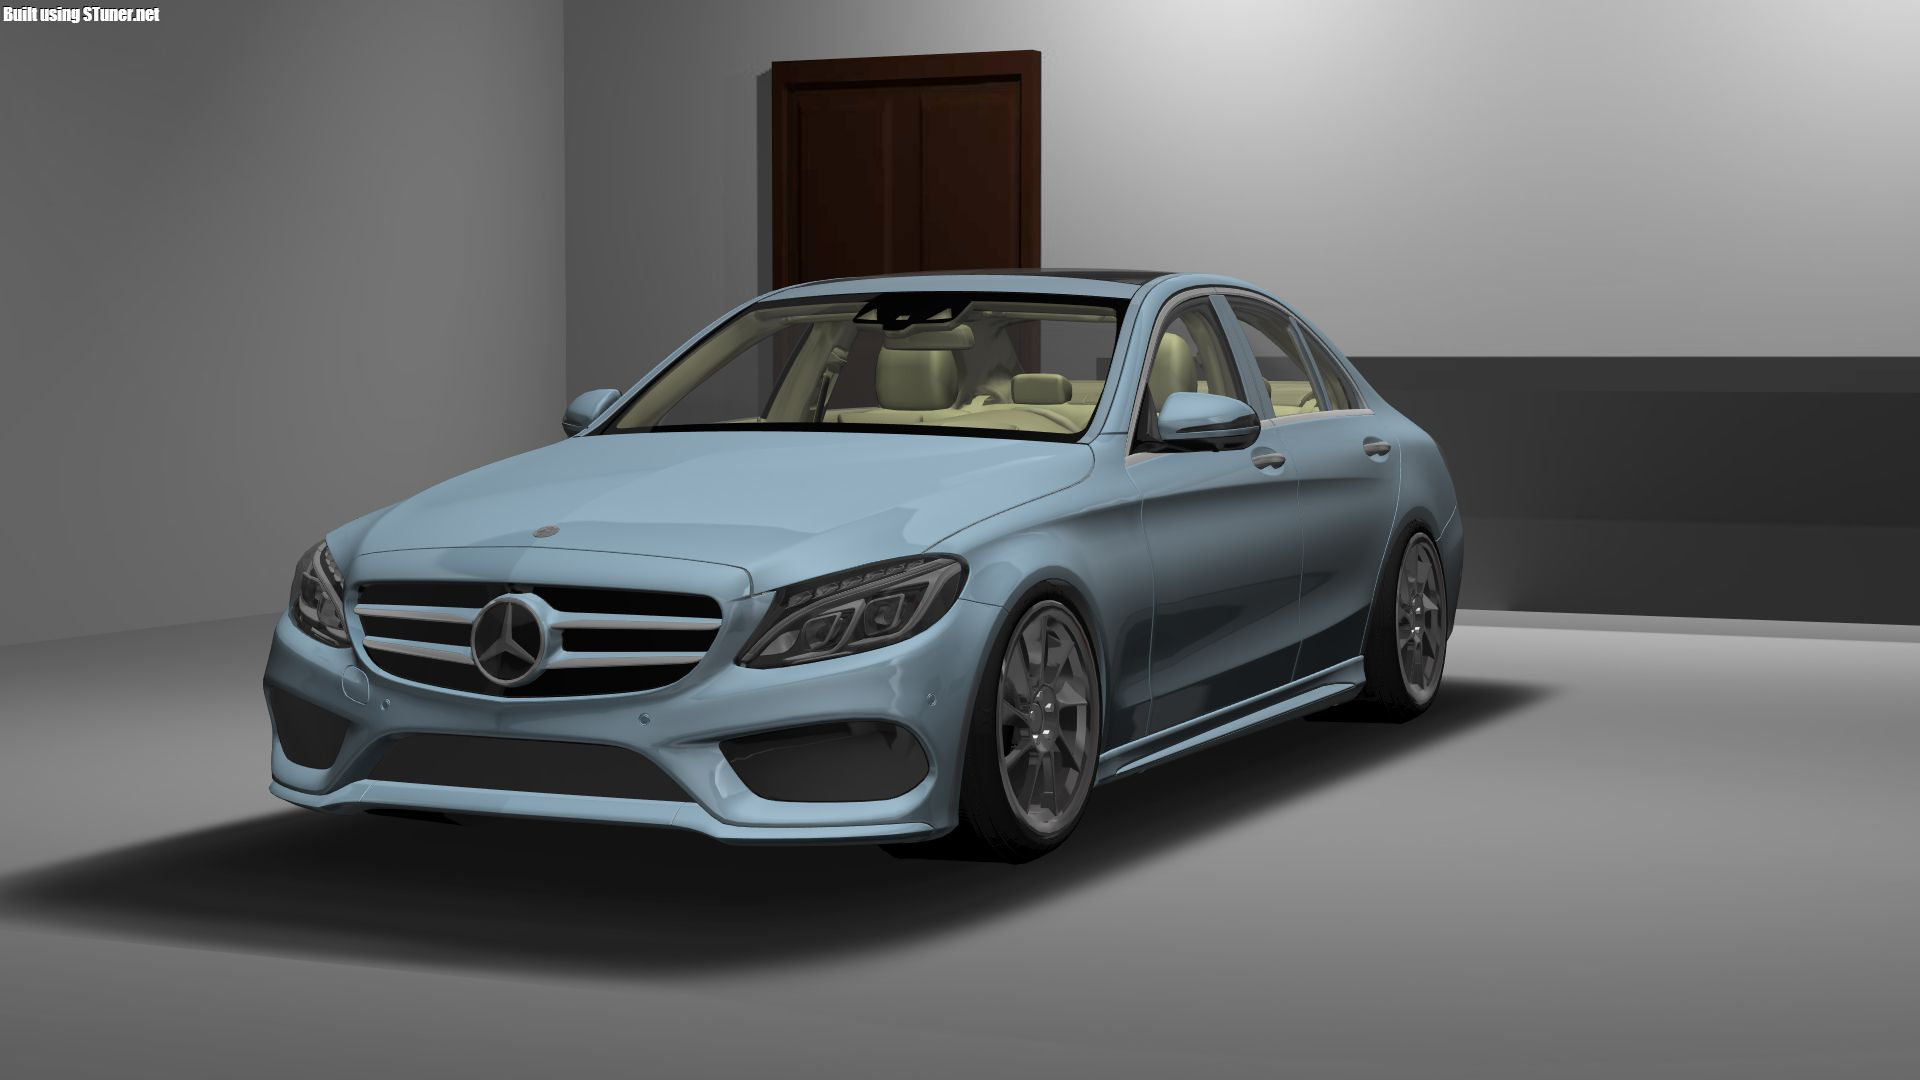 Custom C250  | S-Tuner Creations  | Car photos, Car, Vehicles